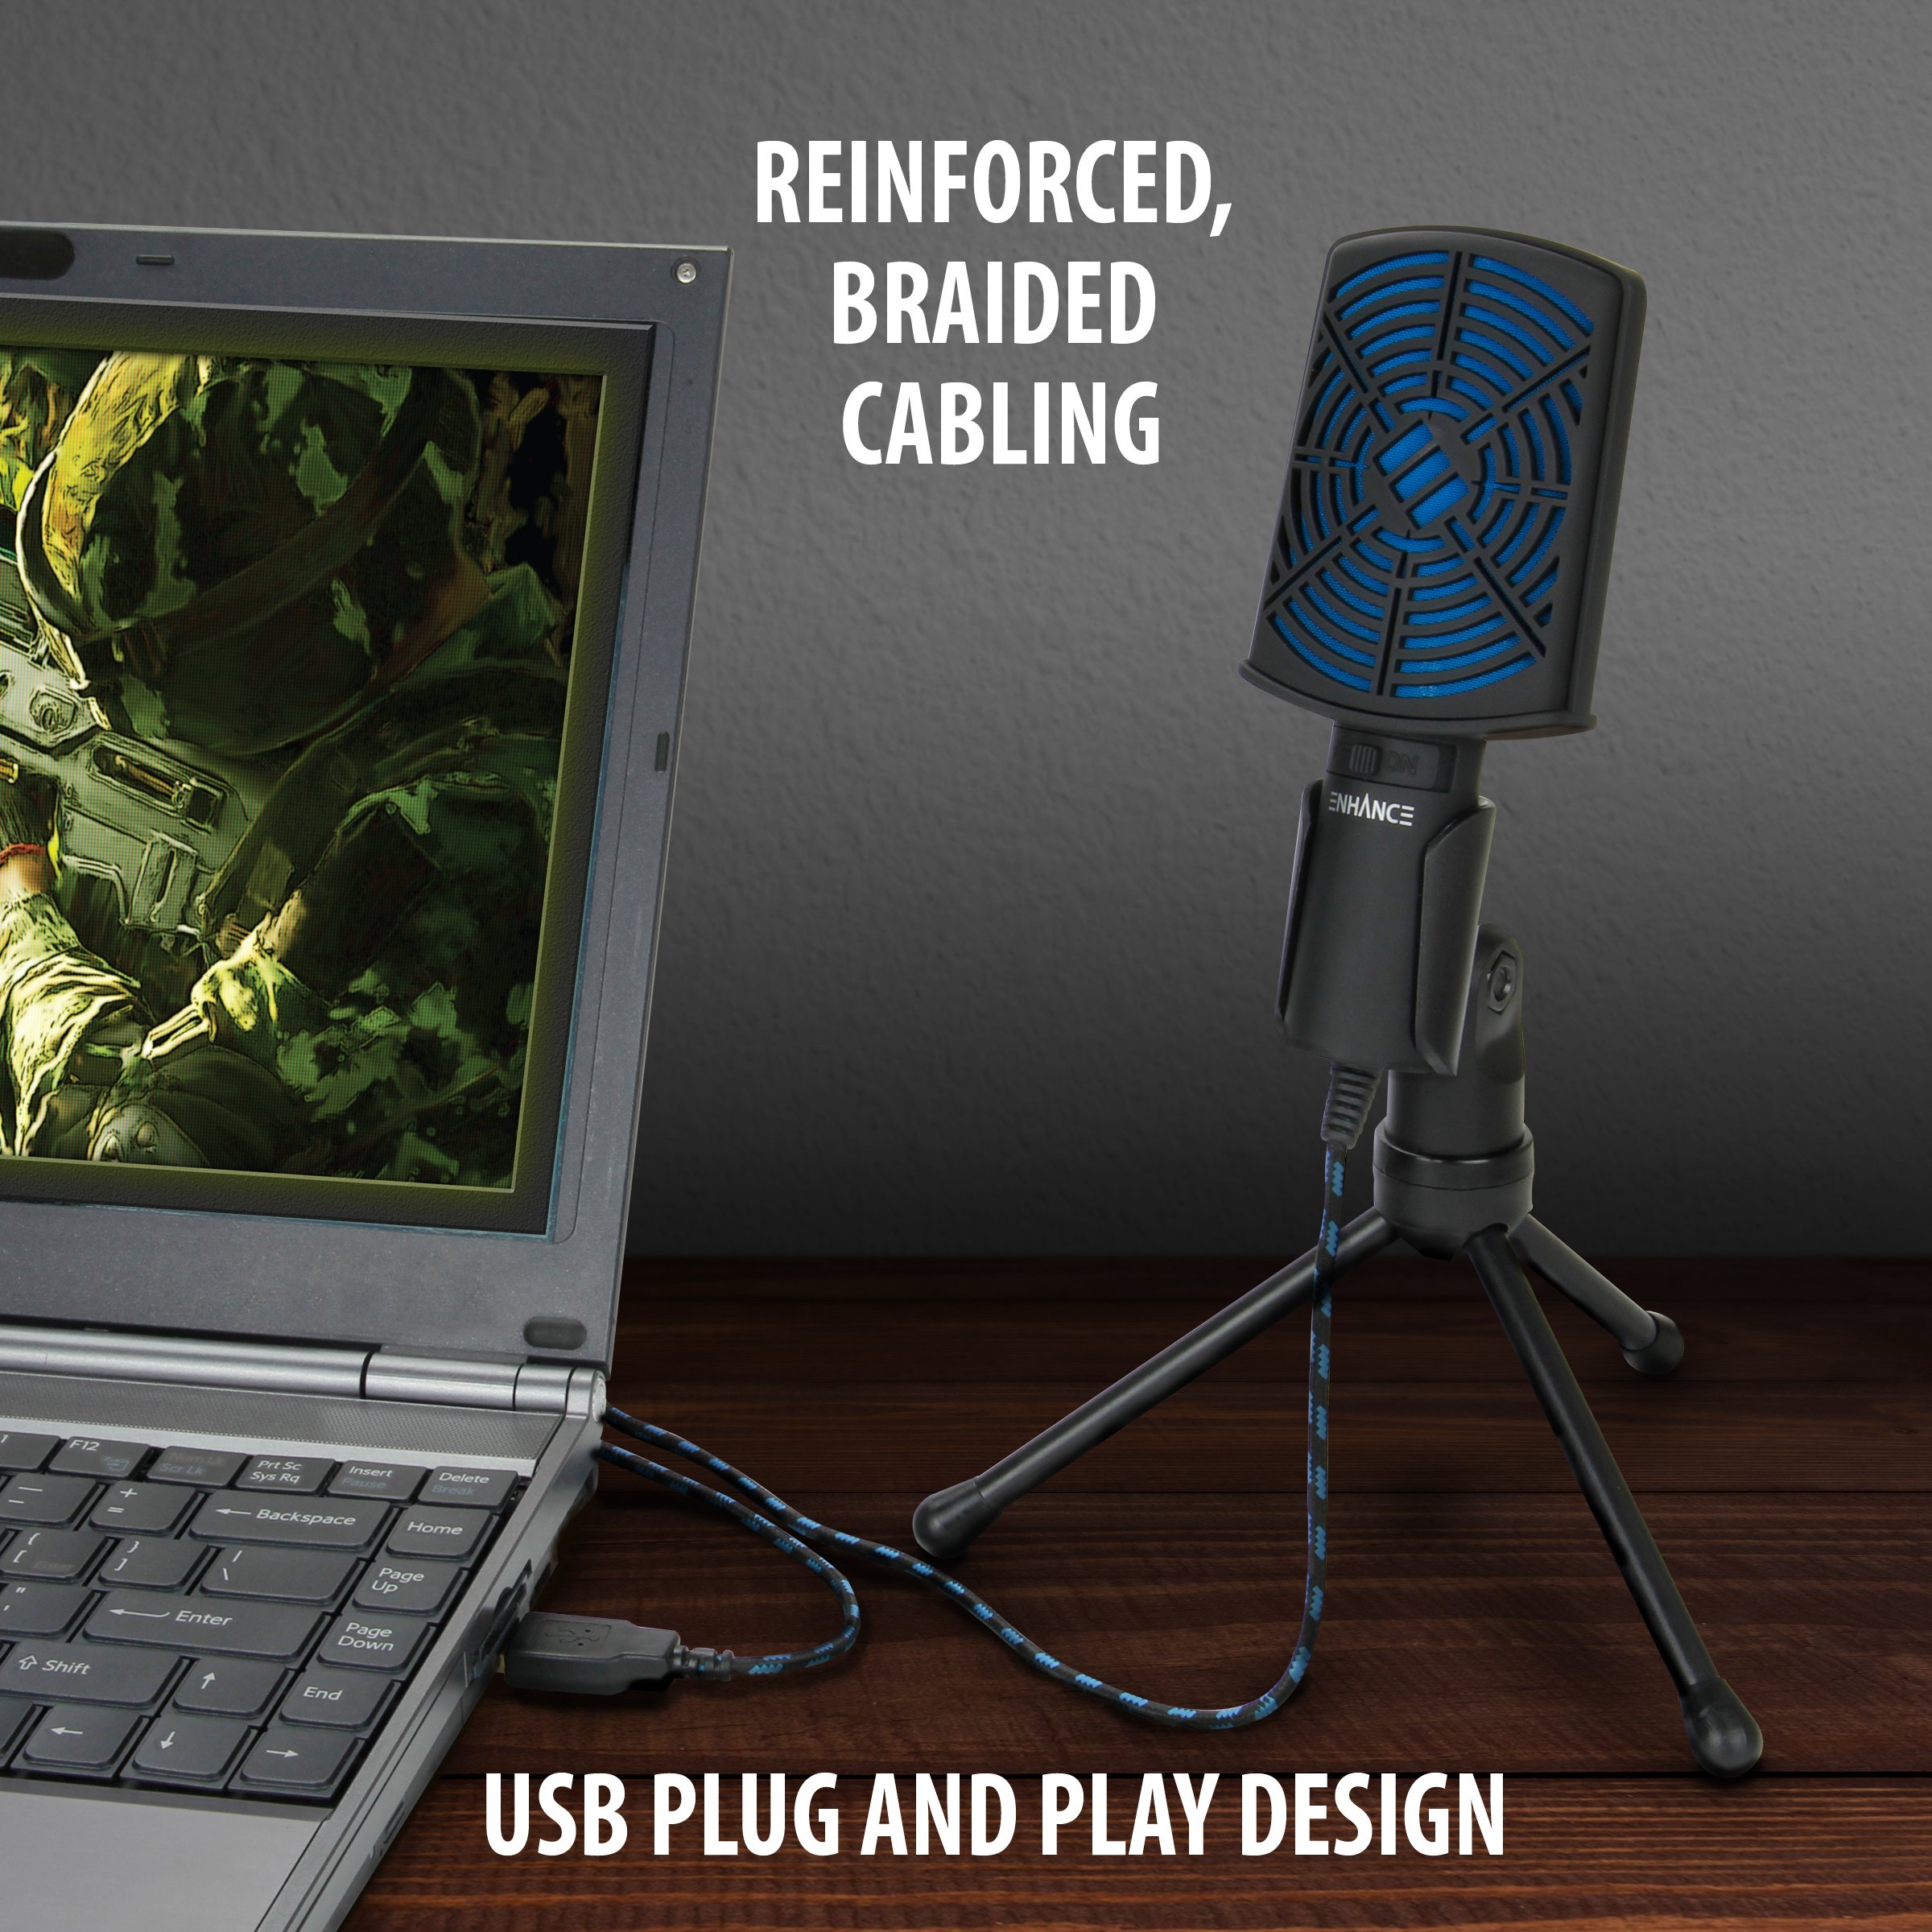 ENHANCE USB Condenser Gaming Microphone - Computer Desktop Mic for Streaming & Recording with Adjustable Stand Design and Mute Switch - For Skype, Conference Calls, Twitch, Youtube, and Discord - Blue by ENHANCE (Image #6)